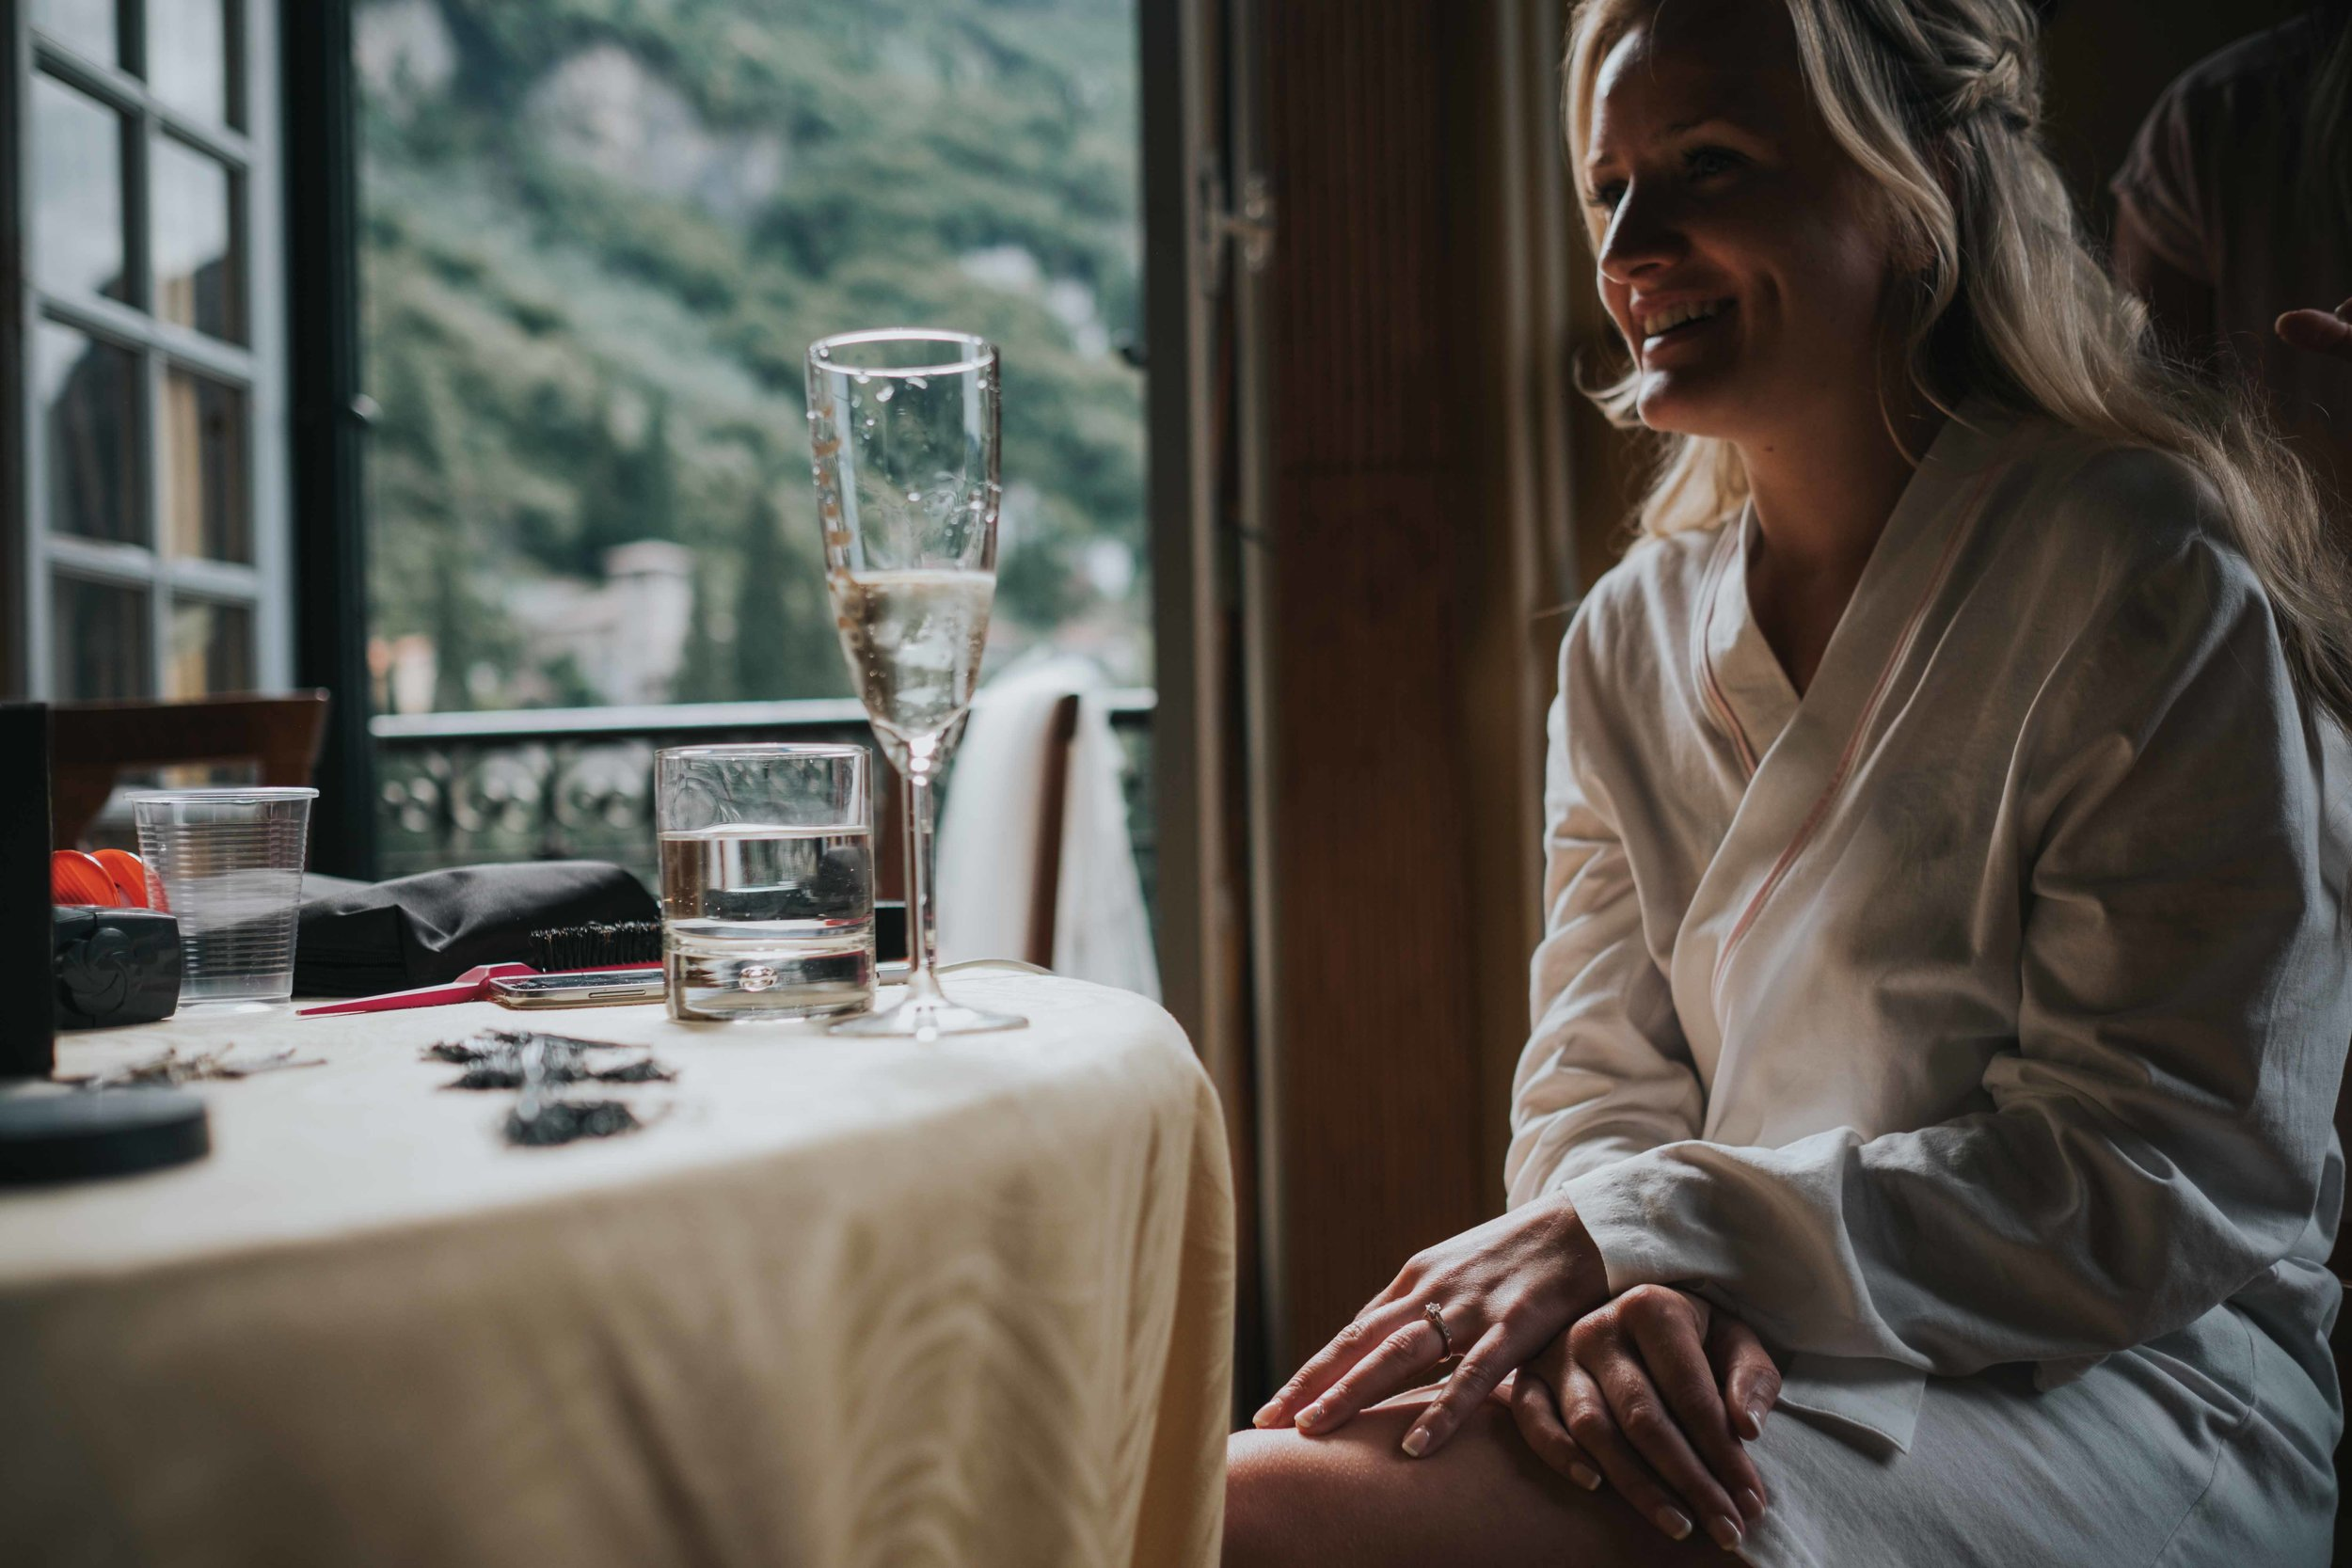 Laco Como Italy destination wedding photographer cheshire north west england documentry photography (11 of 117).jpg